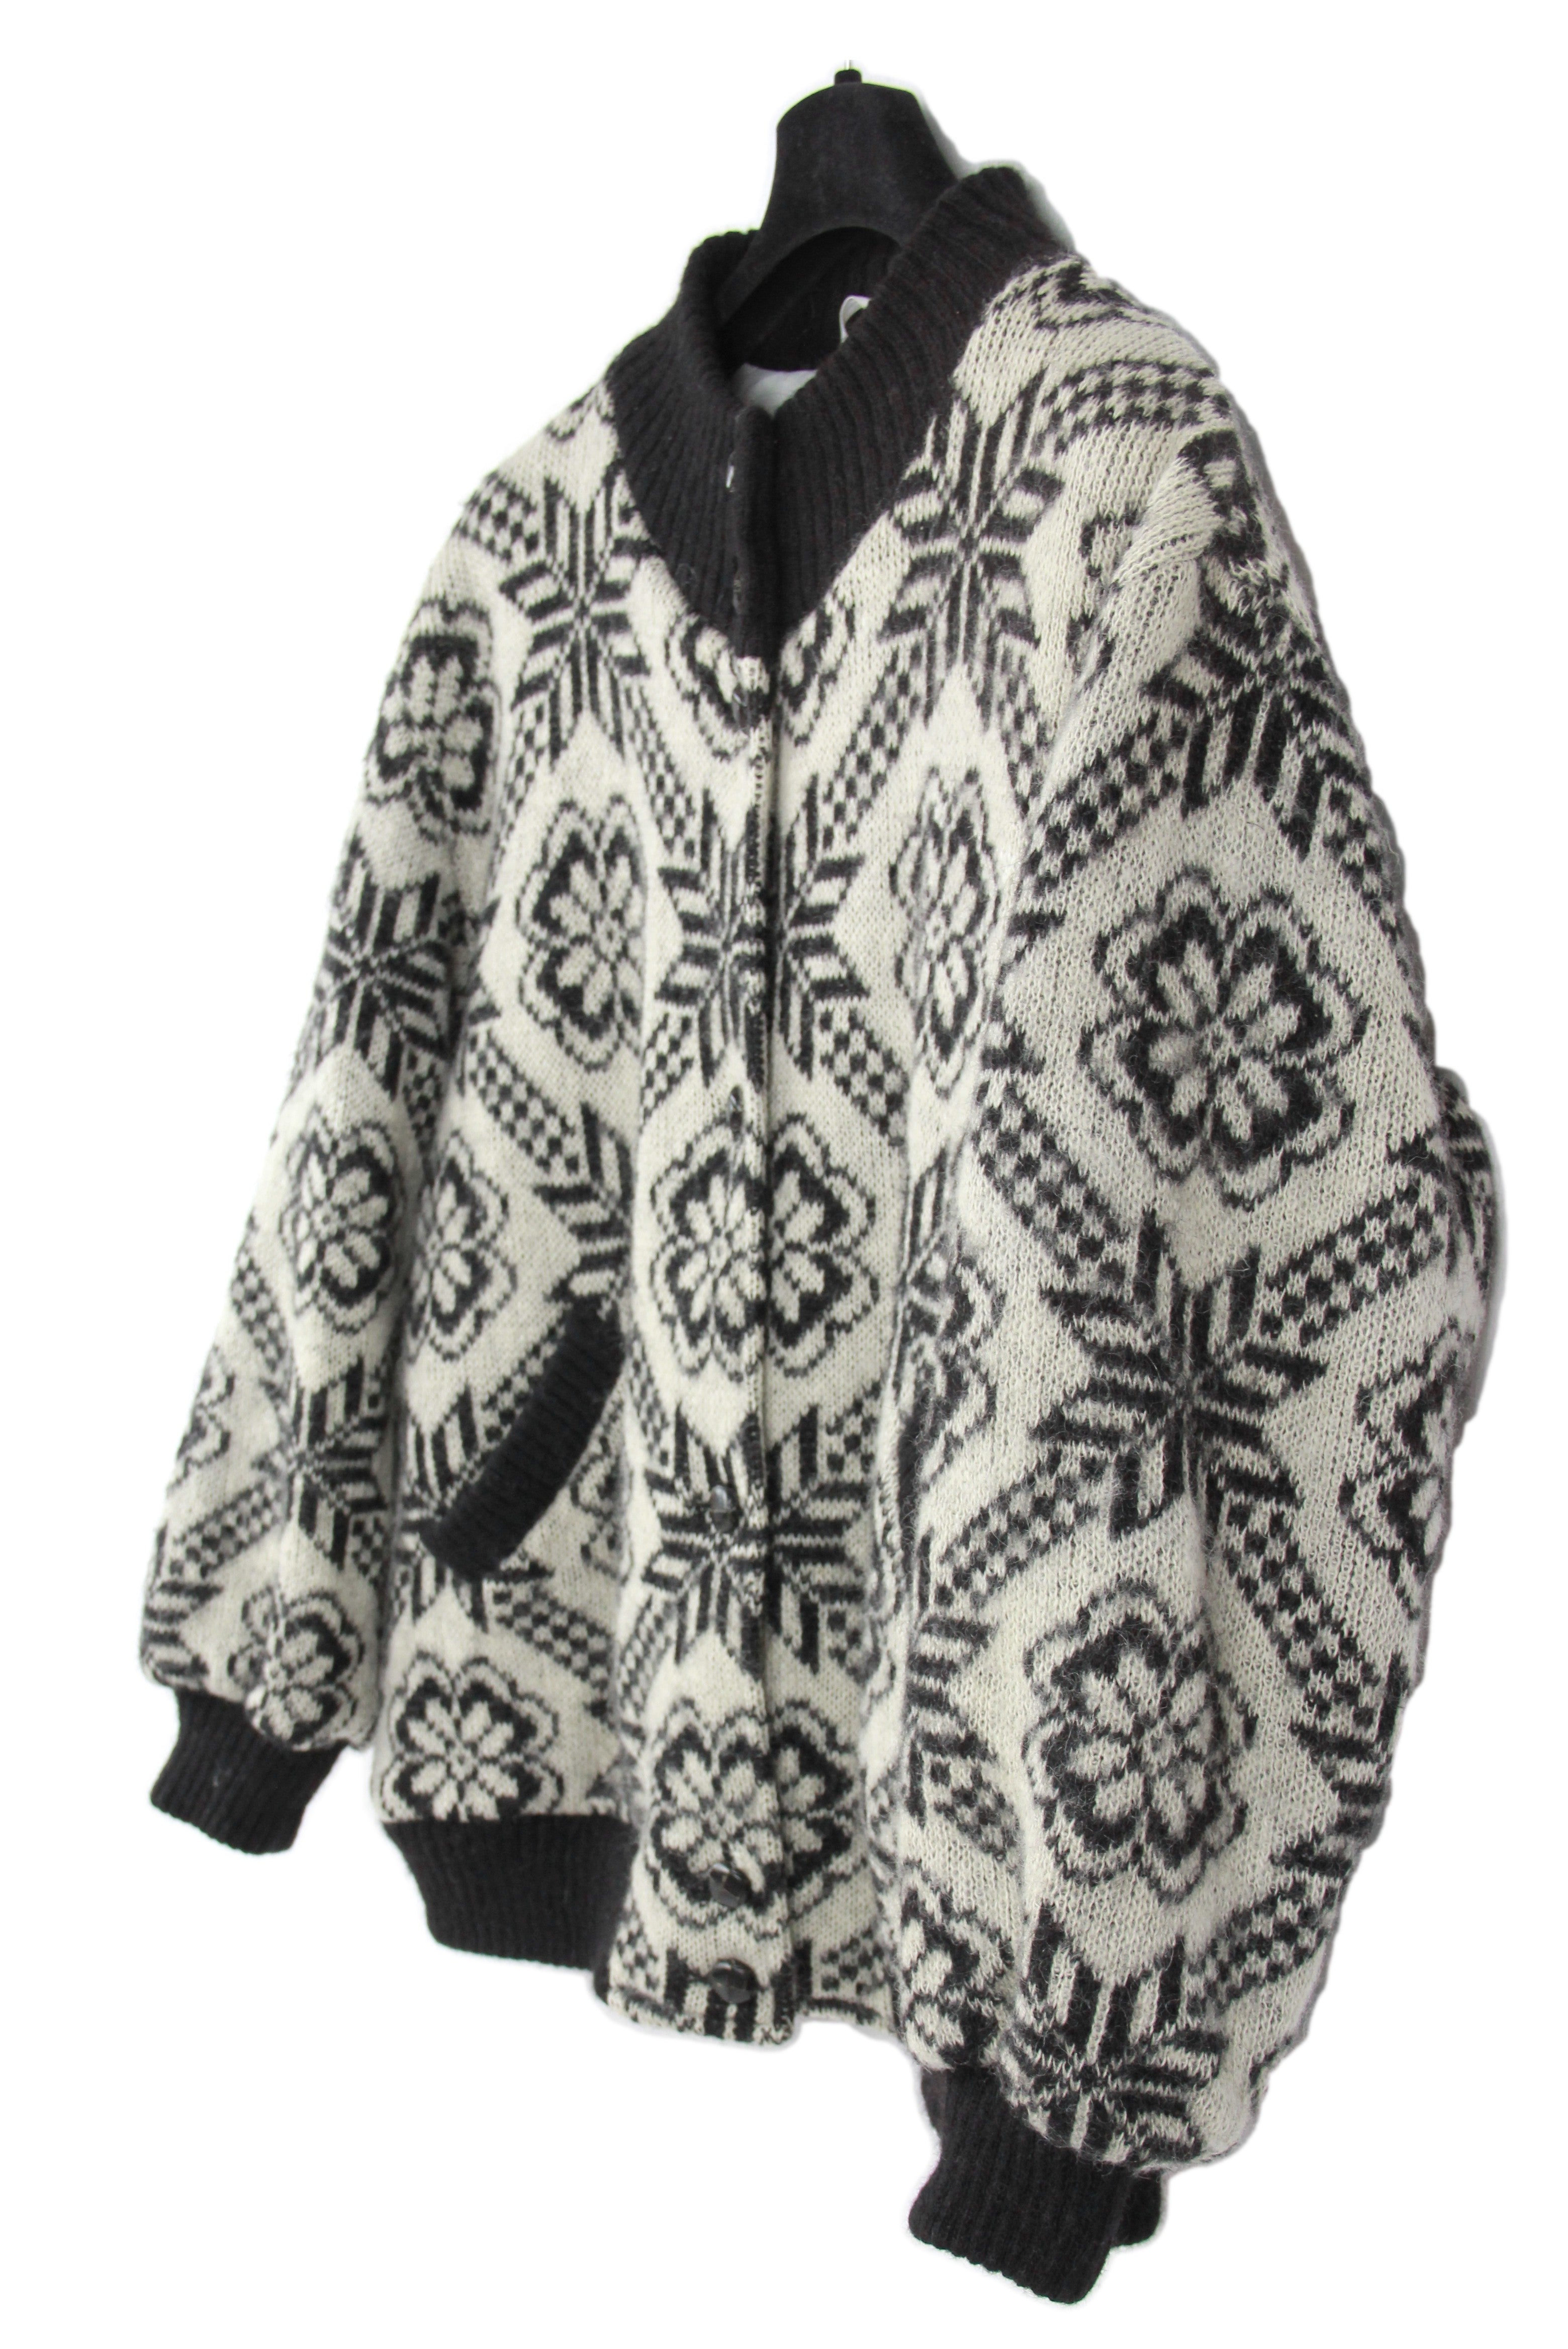 ALAFOSS Icelandic Chunky Wool Fully Lined Cardigan, L